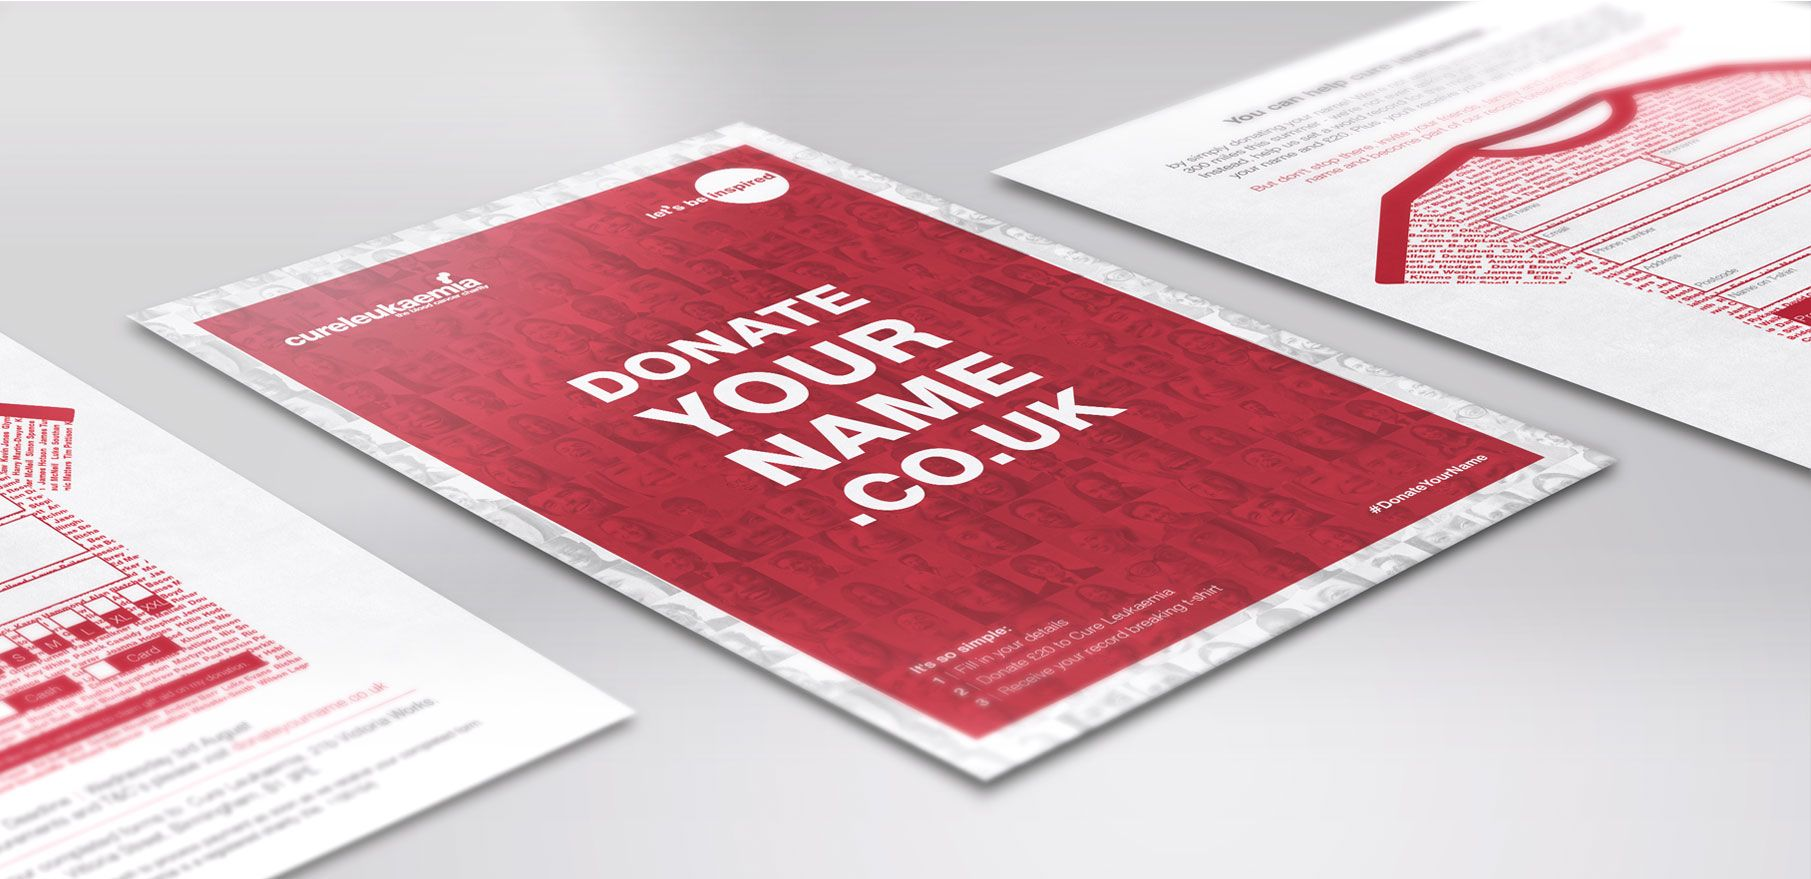 A mockup of Cure Leukaemia's campaign for Donate your name on a flyer